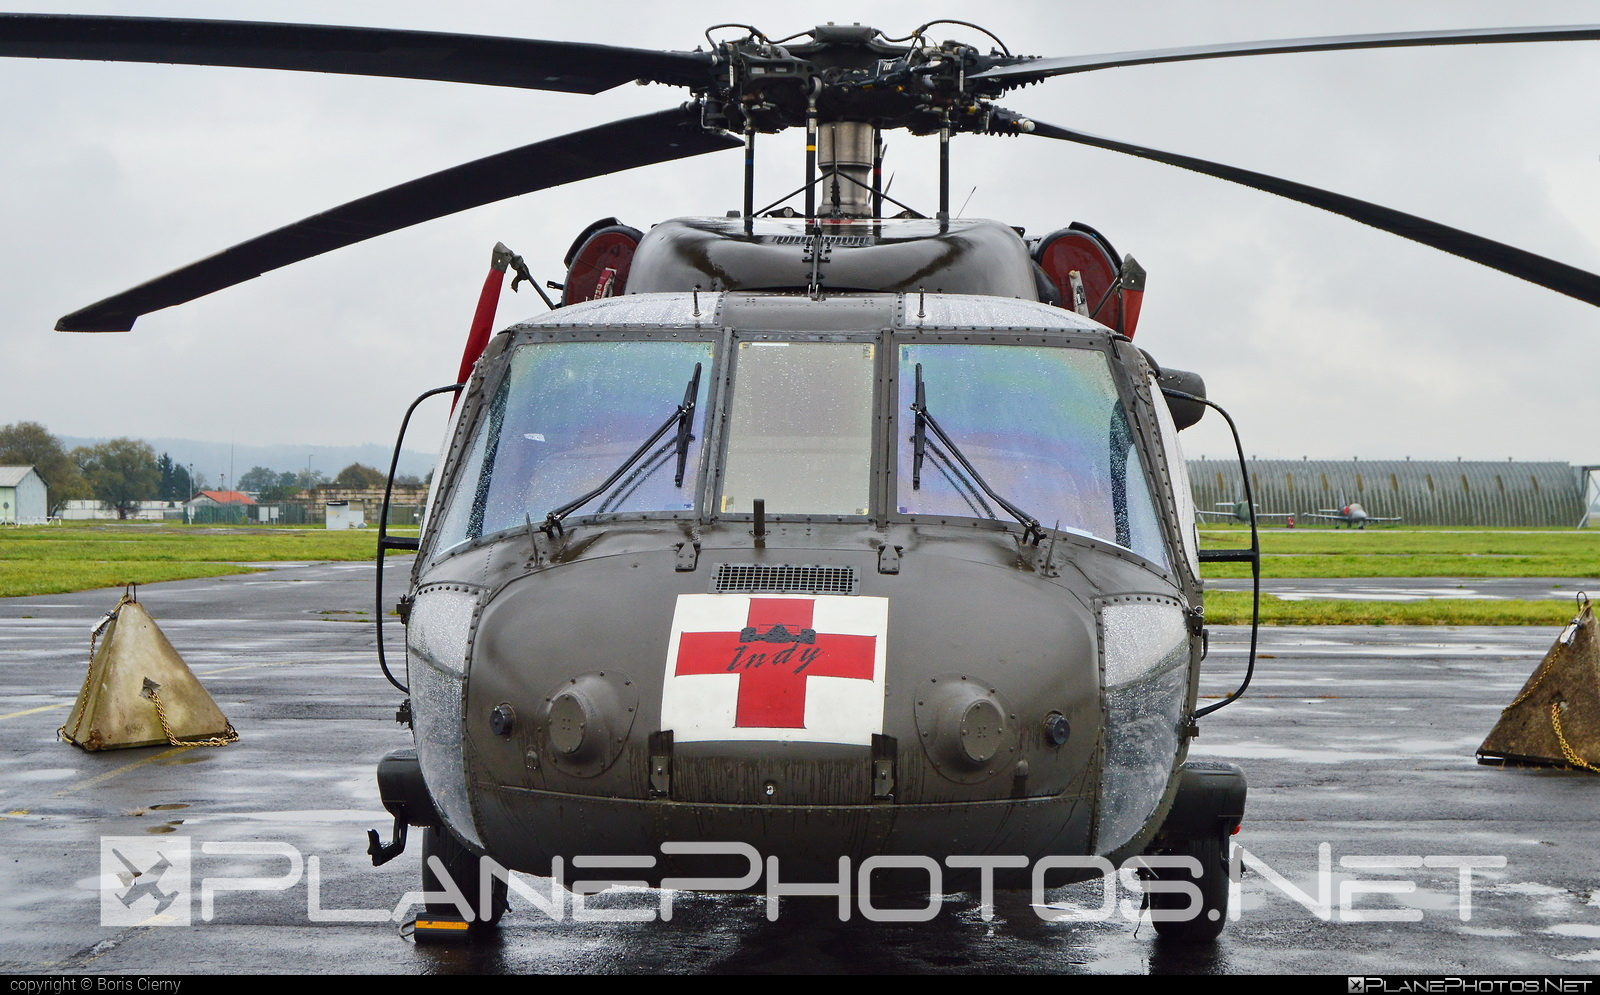 Sikorsky UH-60A Black Hawk - 83-23847 operated by US Army #blackhawk #sikorsky #uh60 #uh60a #uh60blackhawk #usarmy